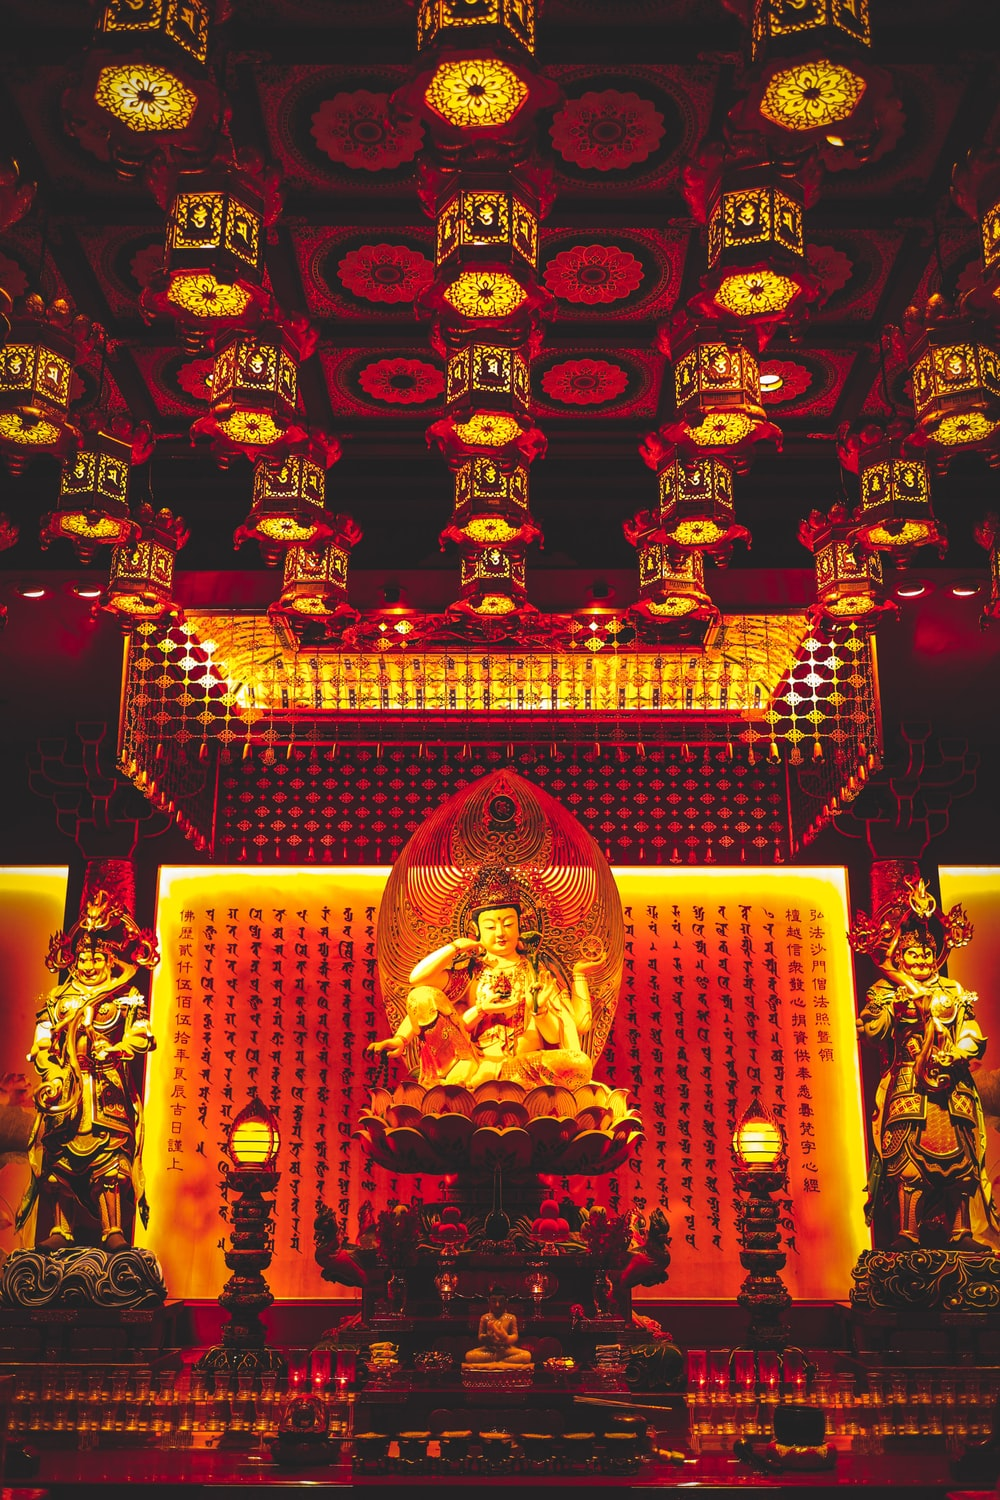 Buddha statues inside building with lights